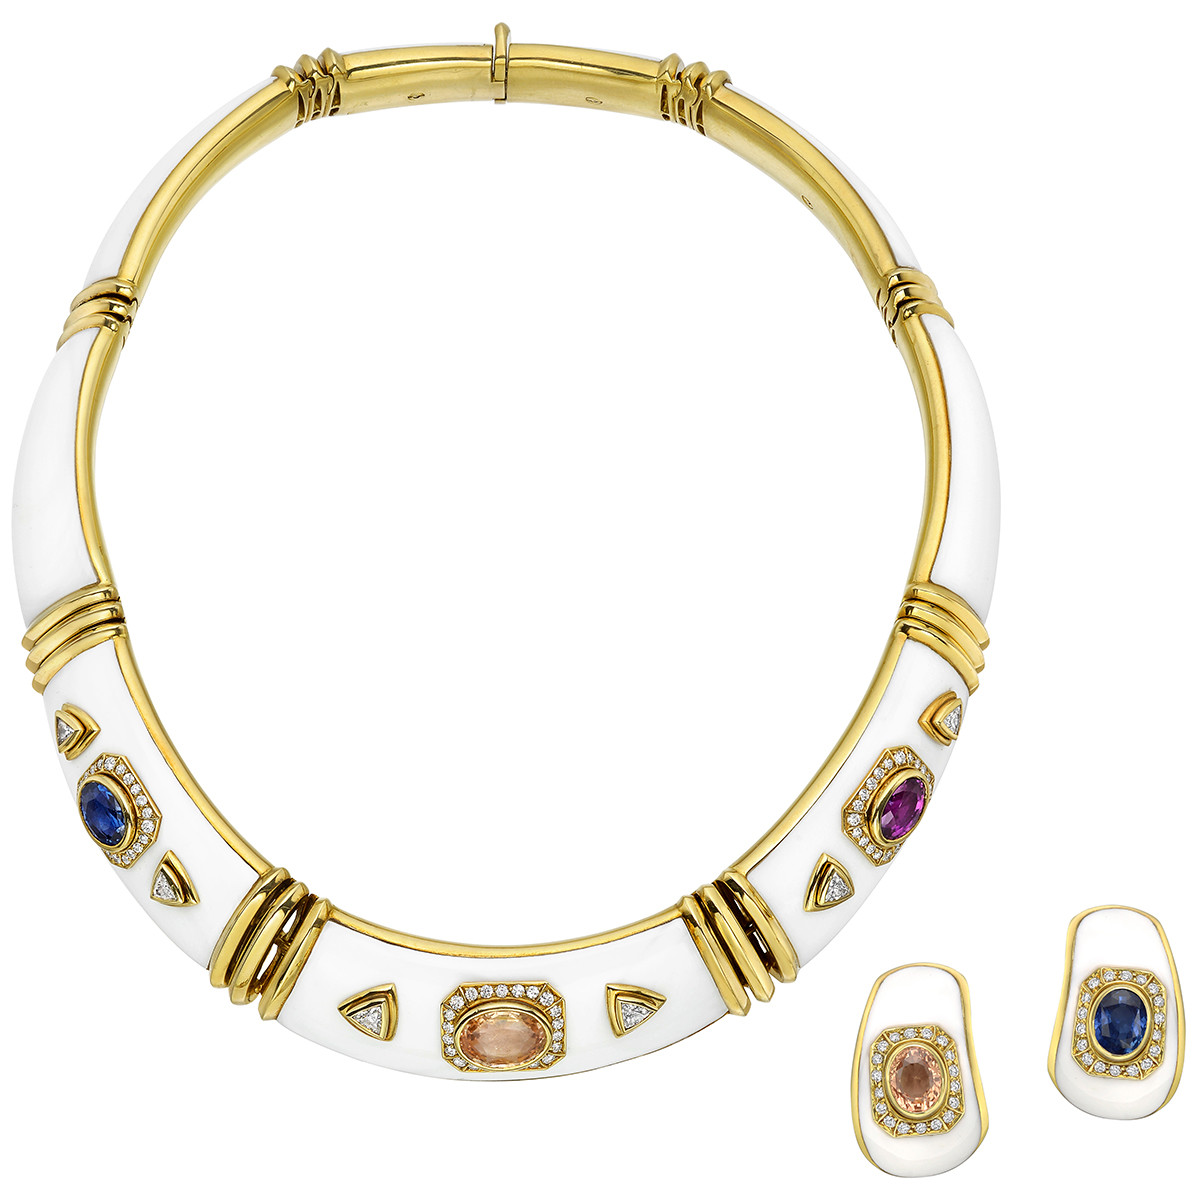 Multicolored Sapphire, Diamond & White Enamel Necklace & Earclips